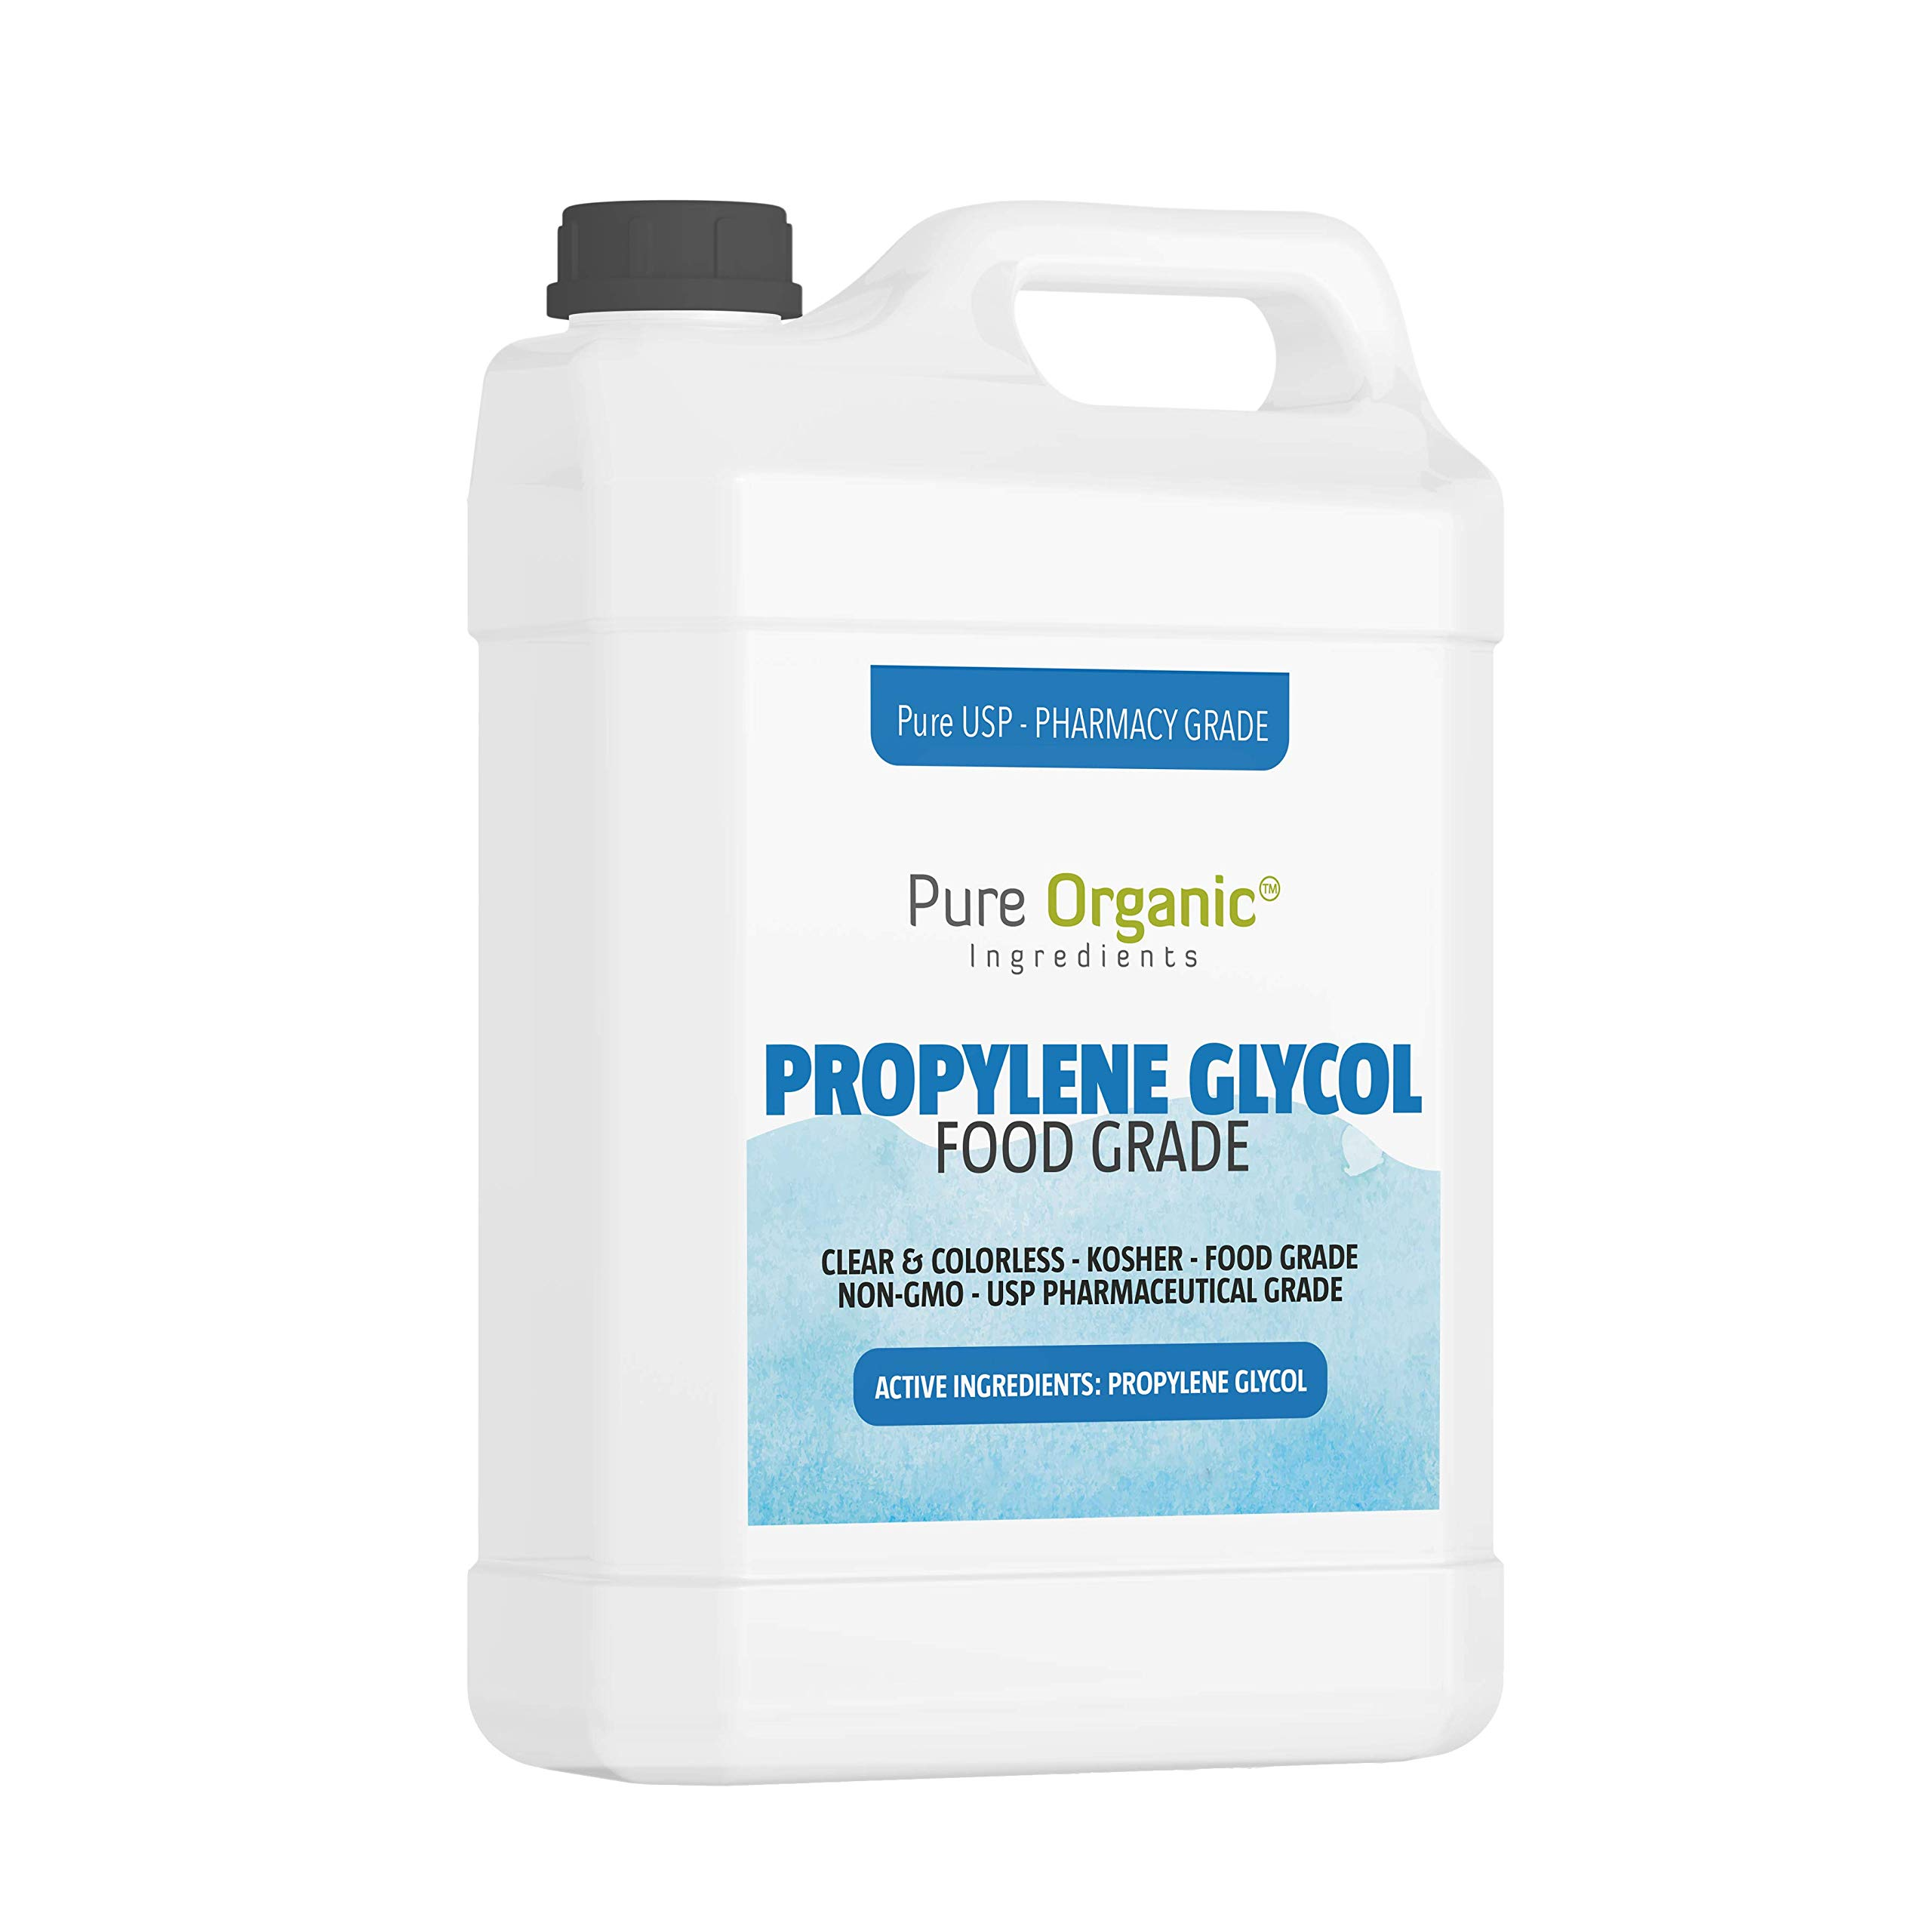 Propylene Glycol (1 Gallon) by Pure Organic Ingredients, Lower Freezing Point, Use in Moisturizers and Cosmetics, Humectant, Preservative, Solvent, Eco-Friendly Antifreeze, Winterize Water Systems by Pure Organic Ingredients